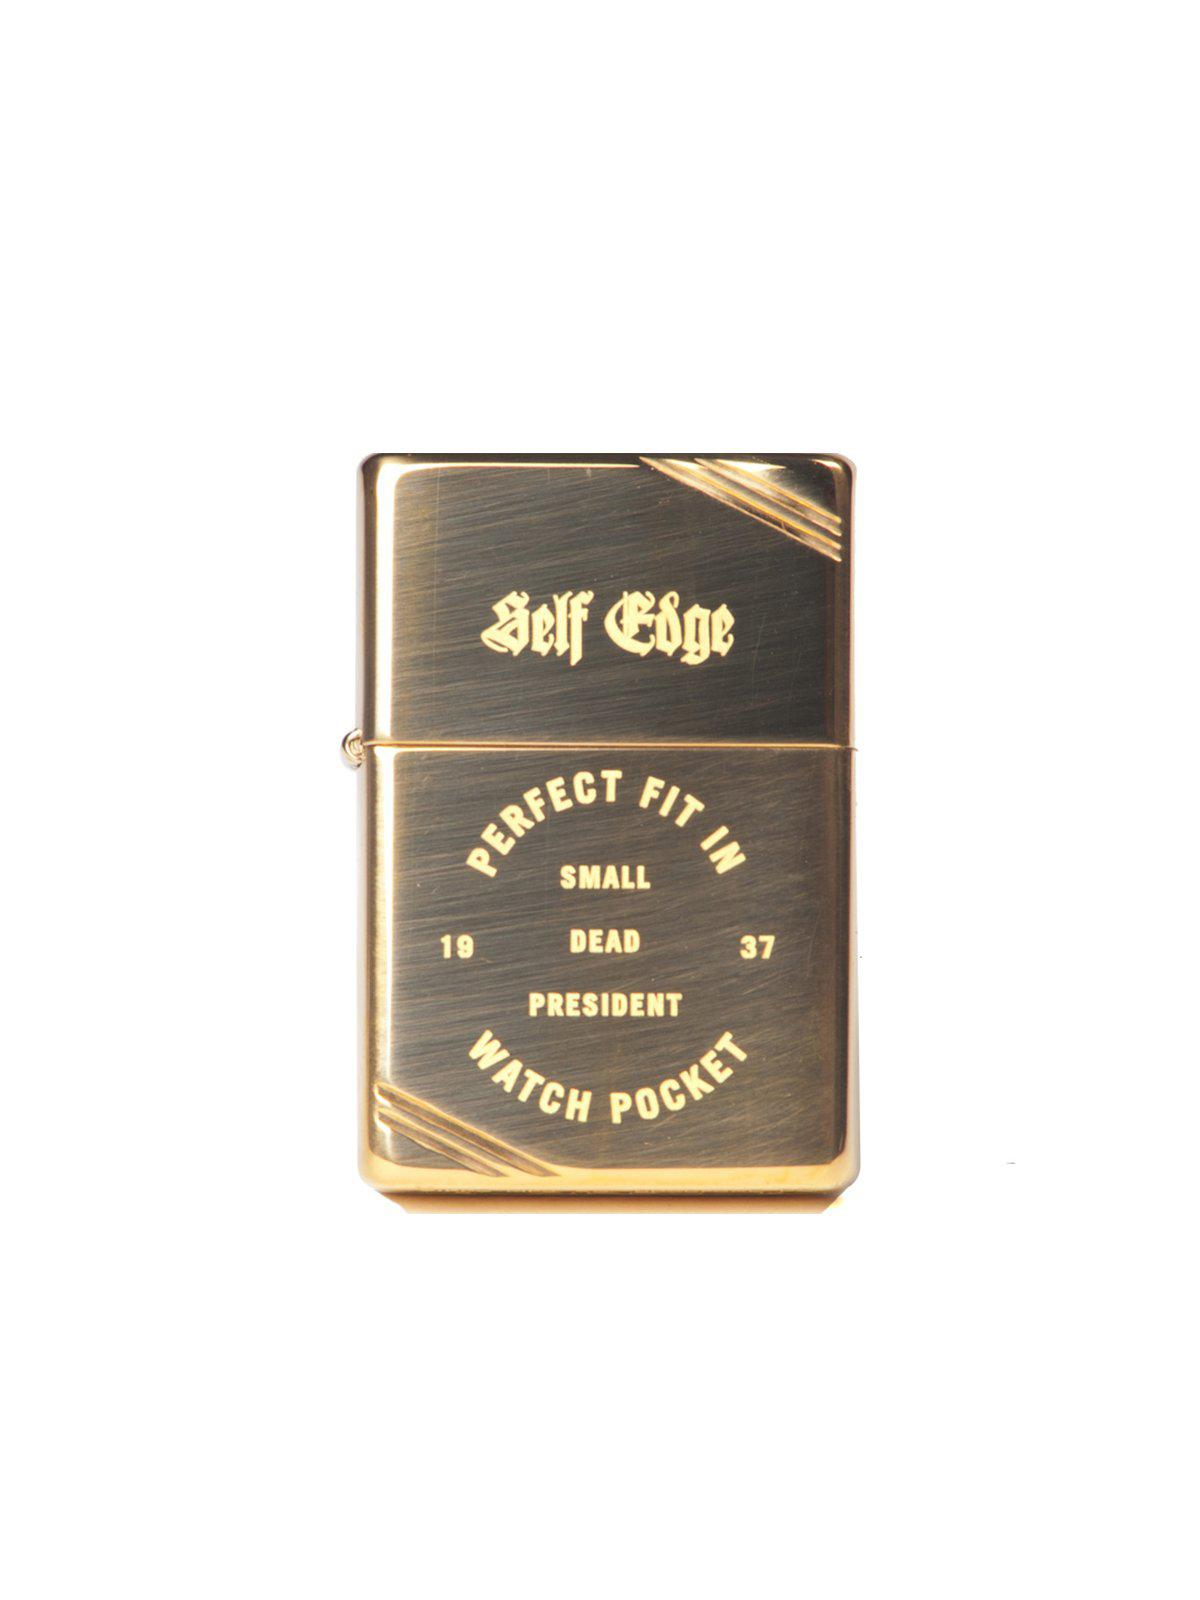 Self Edge Zippo Vintage 1937 Repro Lighter Perfect Fit - MORE by Morello Indonesia